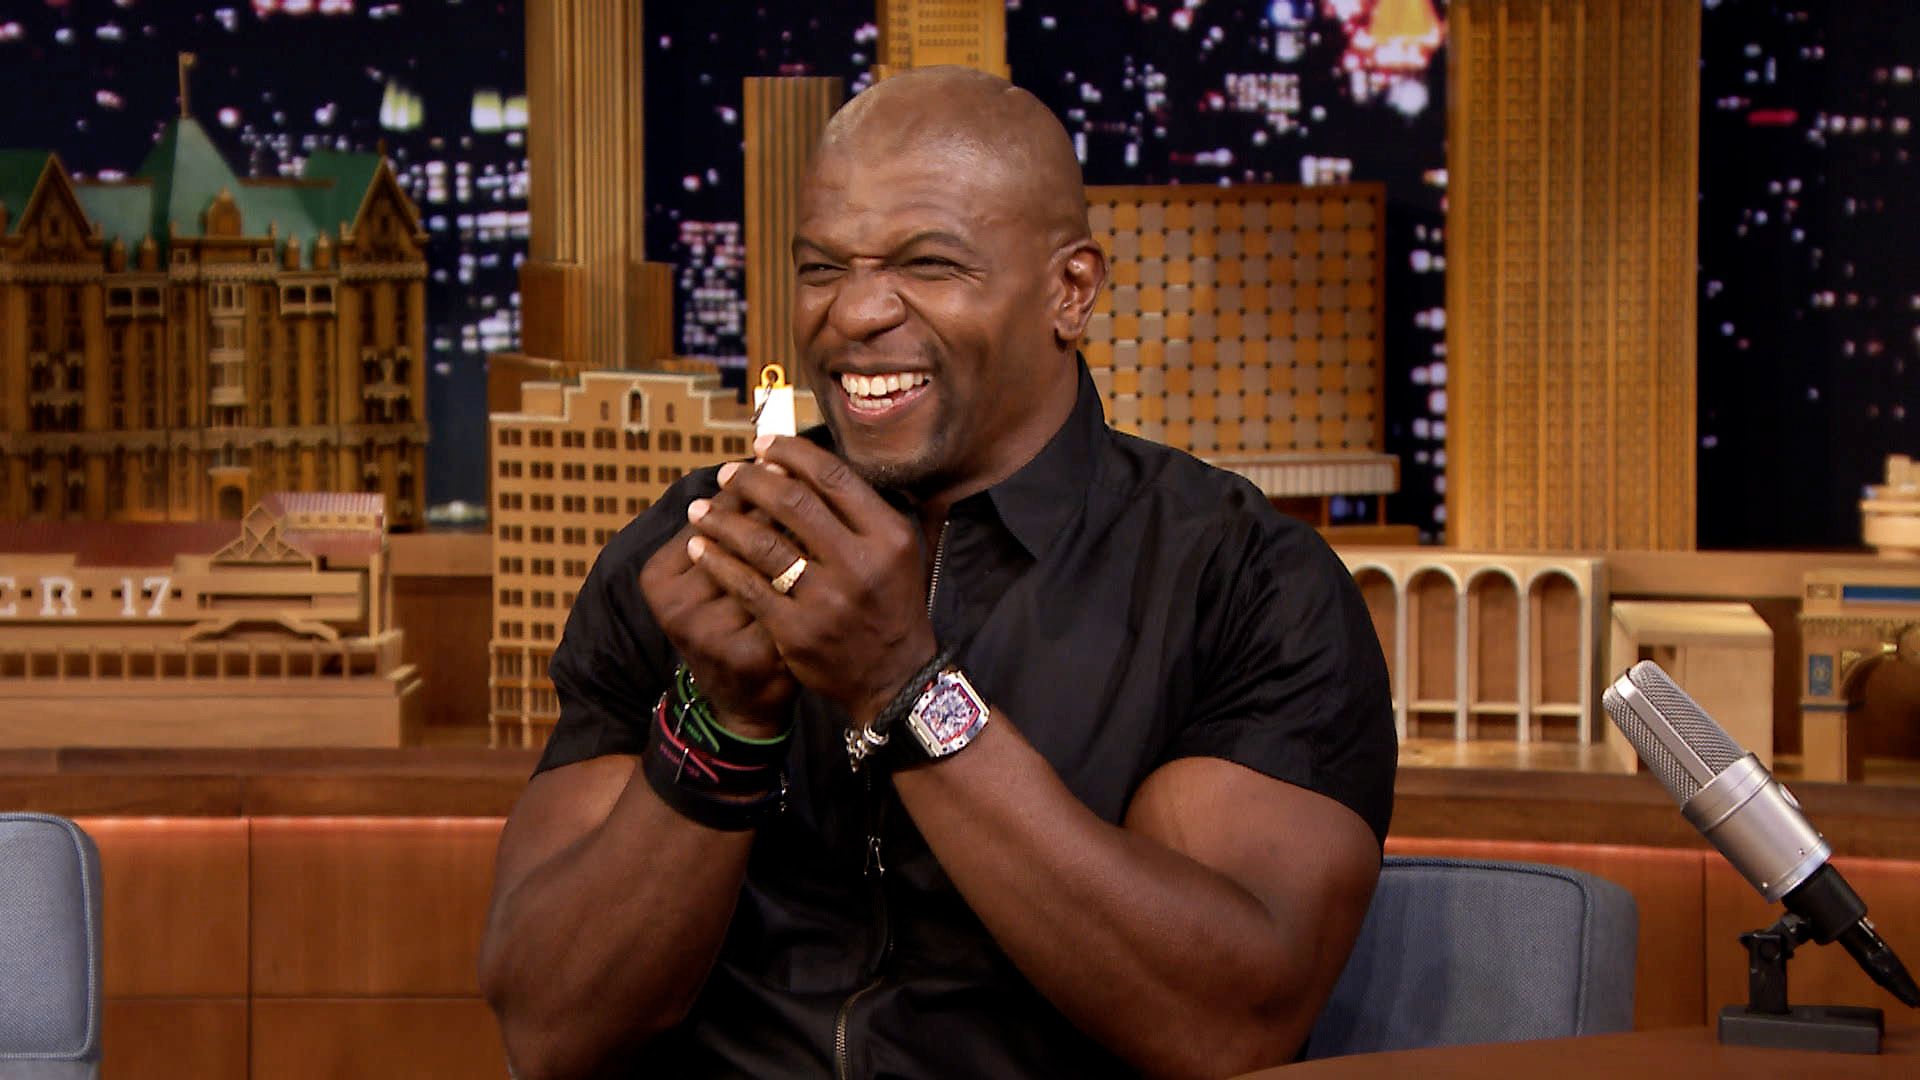 terry crews streamterry crews doomfist, terry crews twitter, terry crews twitch, terry crews power, terry crews height, terry crews sport dance, terry crews wife, terry crews nfl, terry crews кинопоиск, terry crews saves christmas, terry crews facebook, terry crews youtube, terry crews family, terry crews pc, terry crews robot, terry crews фильмография, terry crews old spice, terry crews paintings, terry crews stream, terry crews euro training